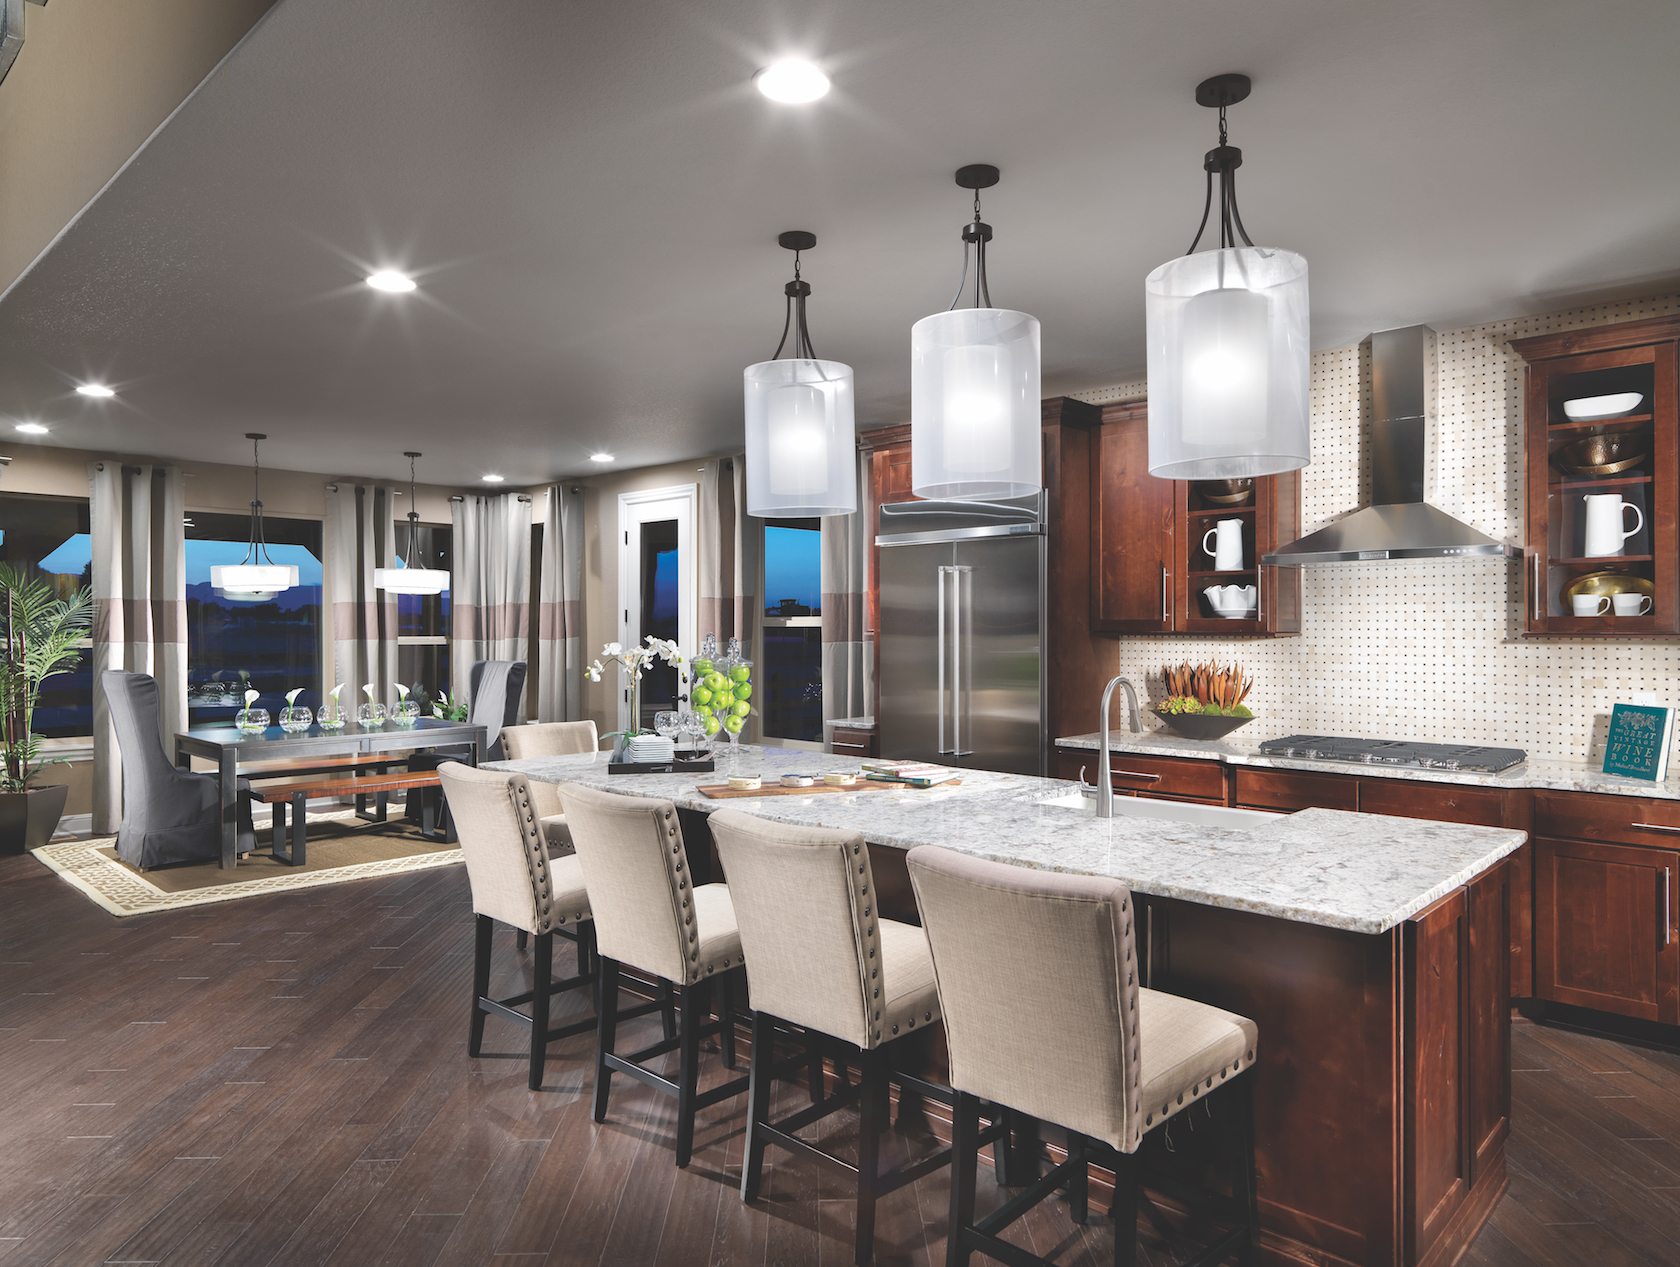 A modern kitchen with light fixtures hanging over the center island.